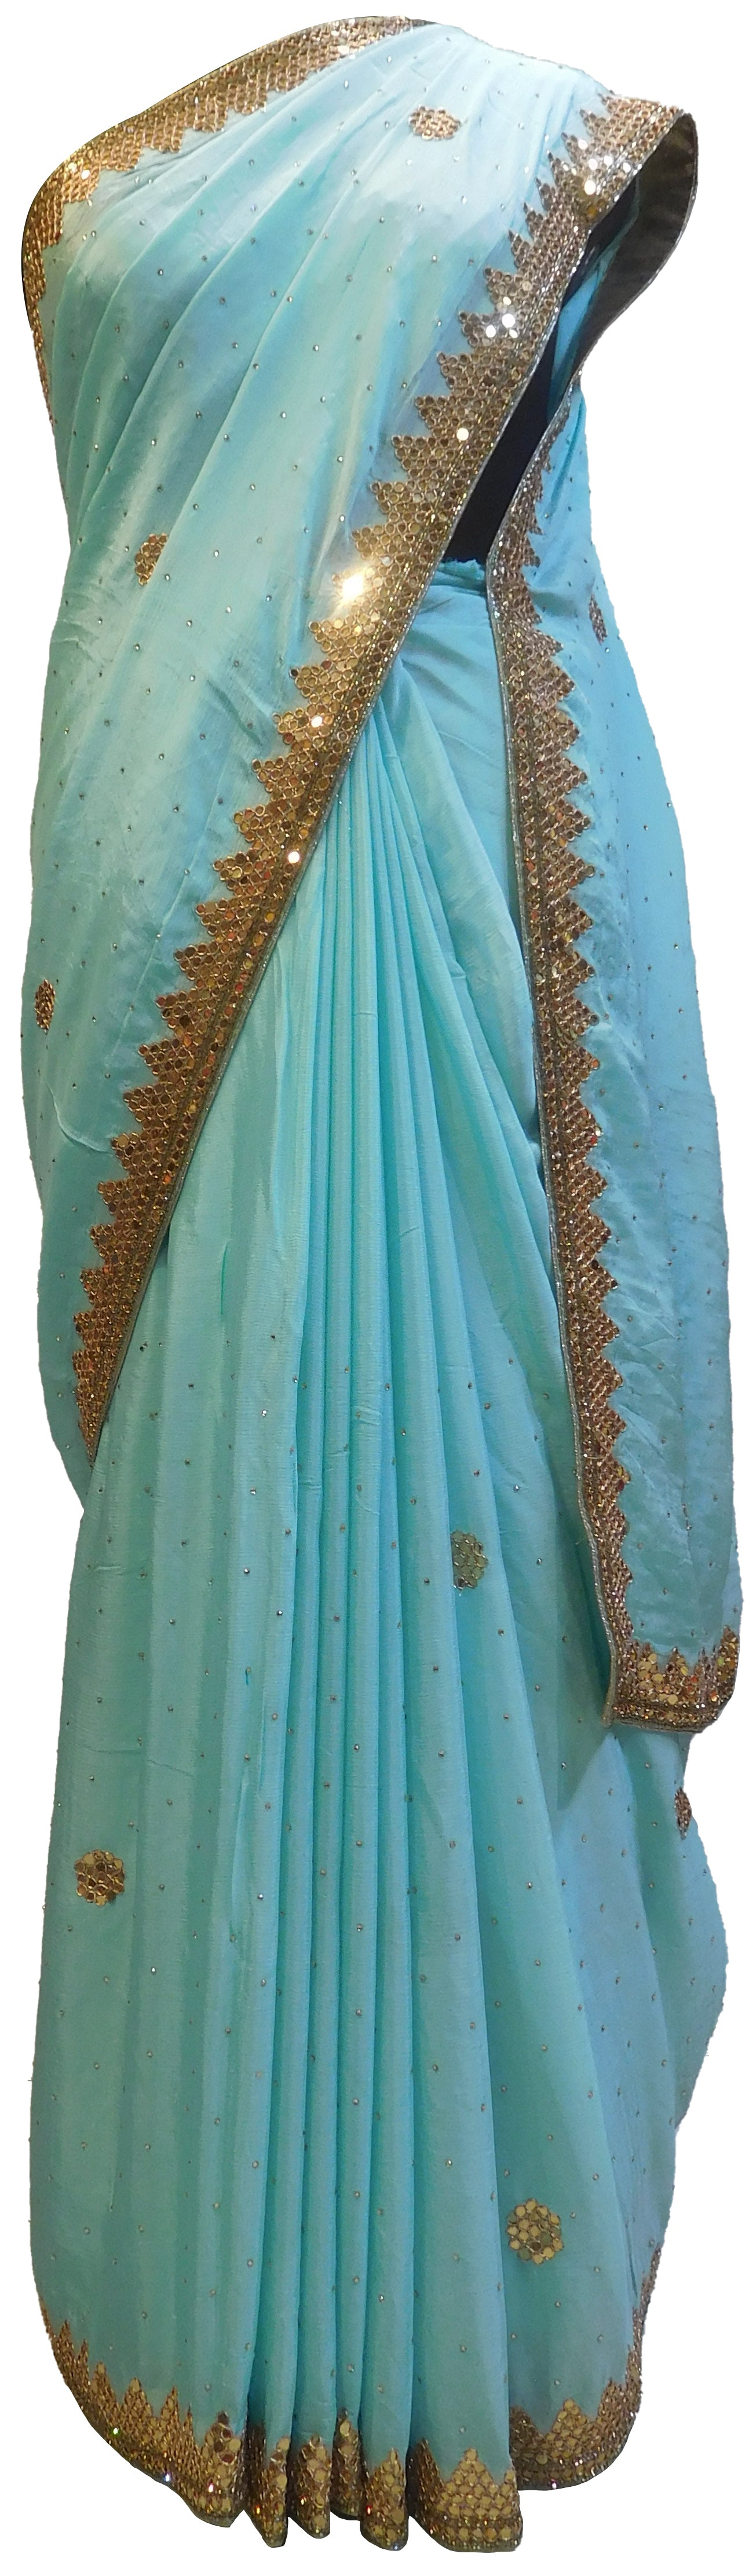 SMSAREE Blue Designer Wedding Partywear Crepe (Chinon) Stone Cutdana Mirror & Bullion Hand Embroidery Work Bridal Saree Sari With Blouse Piece E492